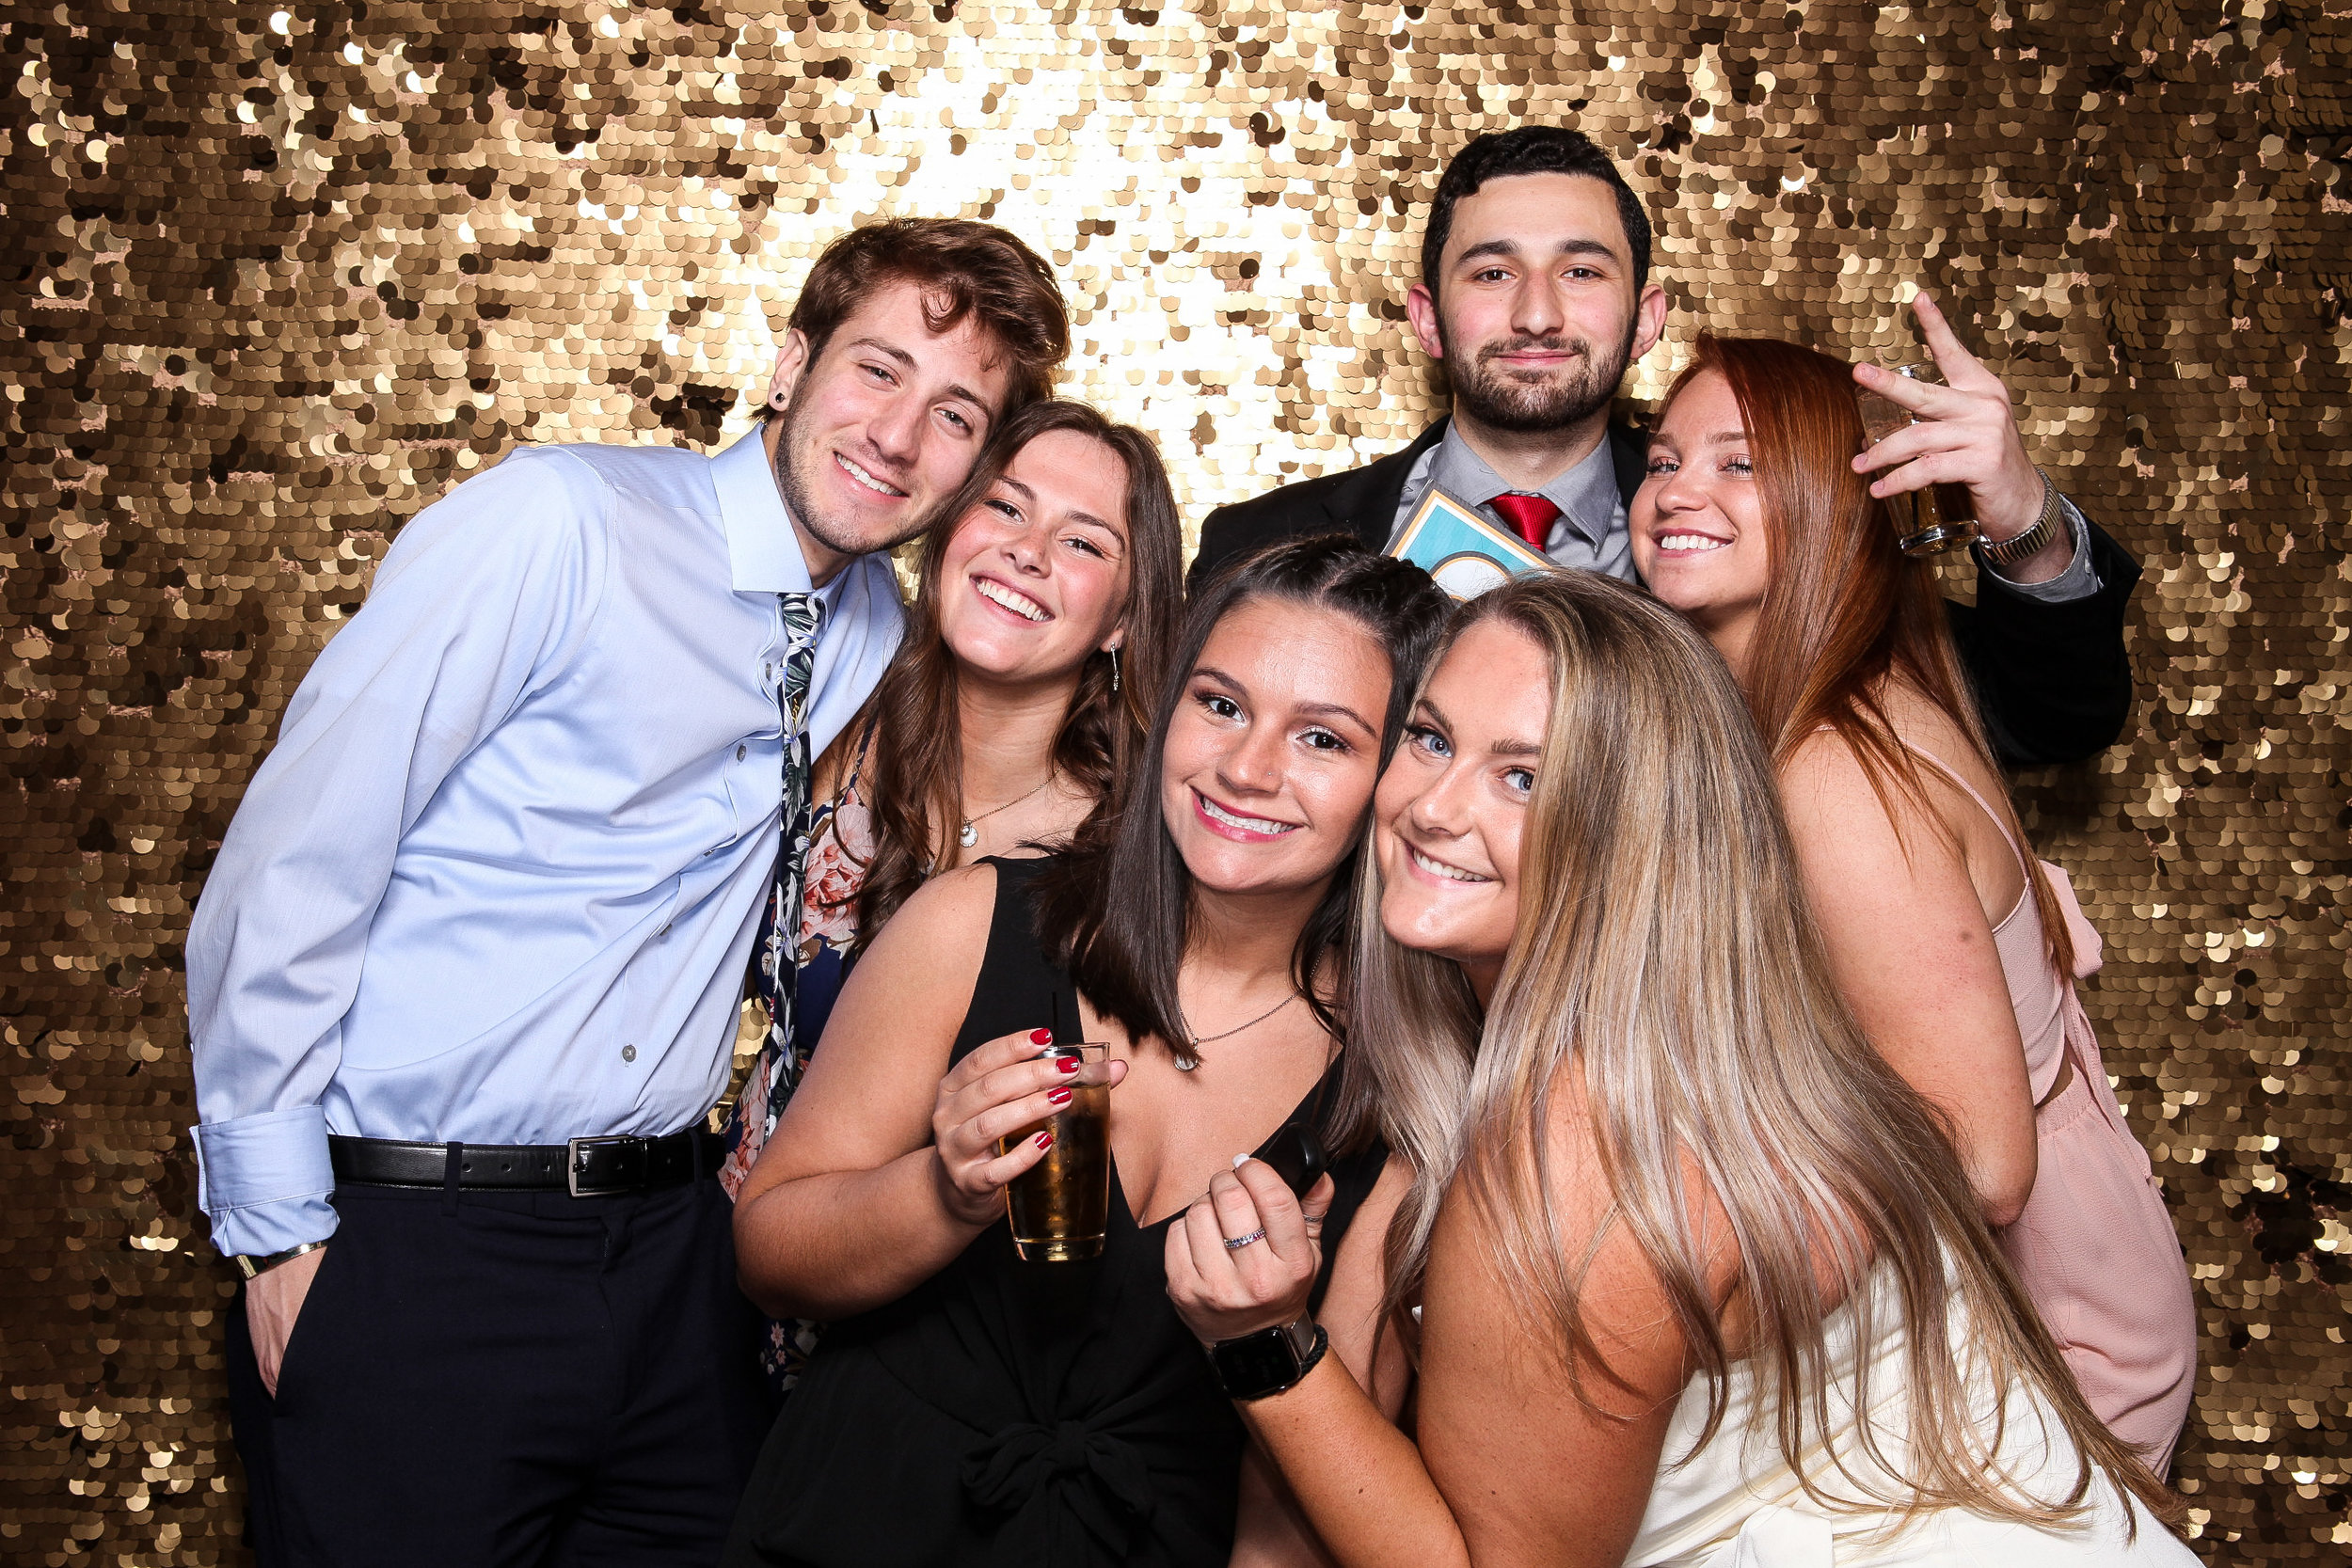 20190503_Adelphi_Senior_Formal-238.jpg